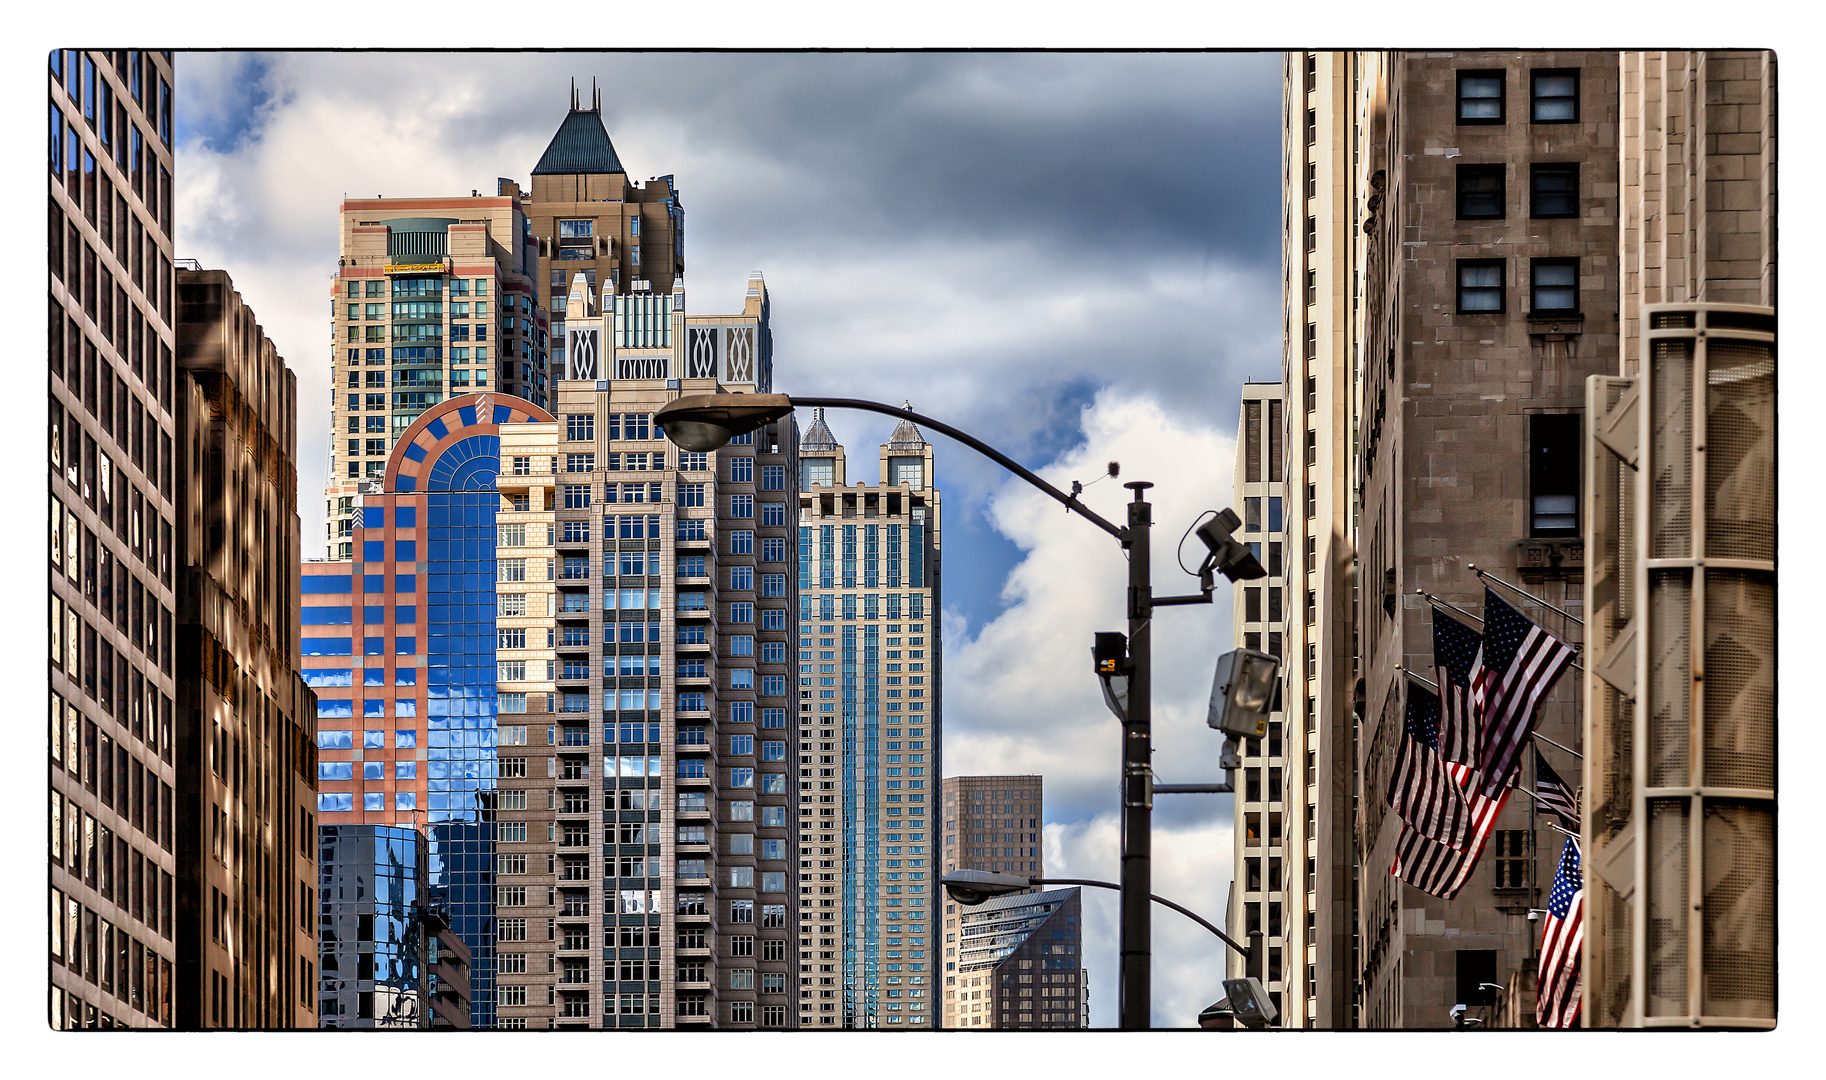 Chicagoview 2